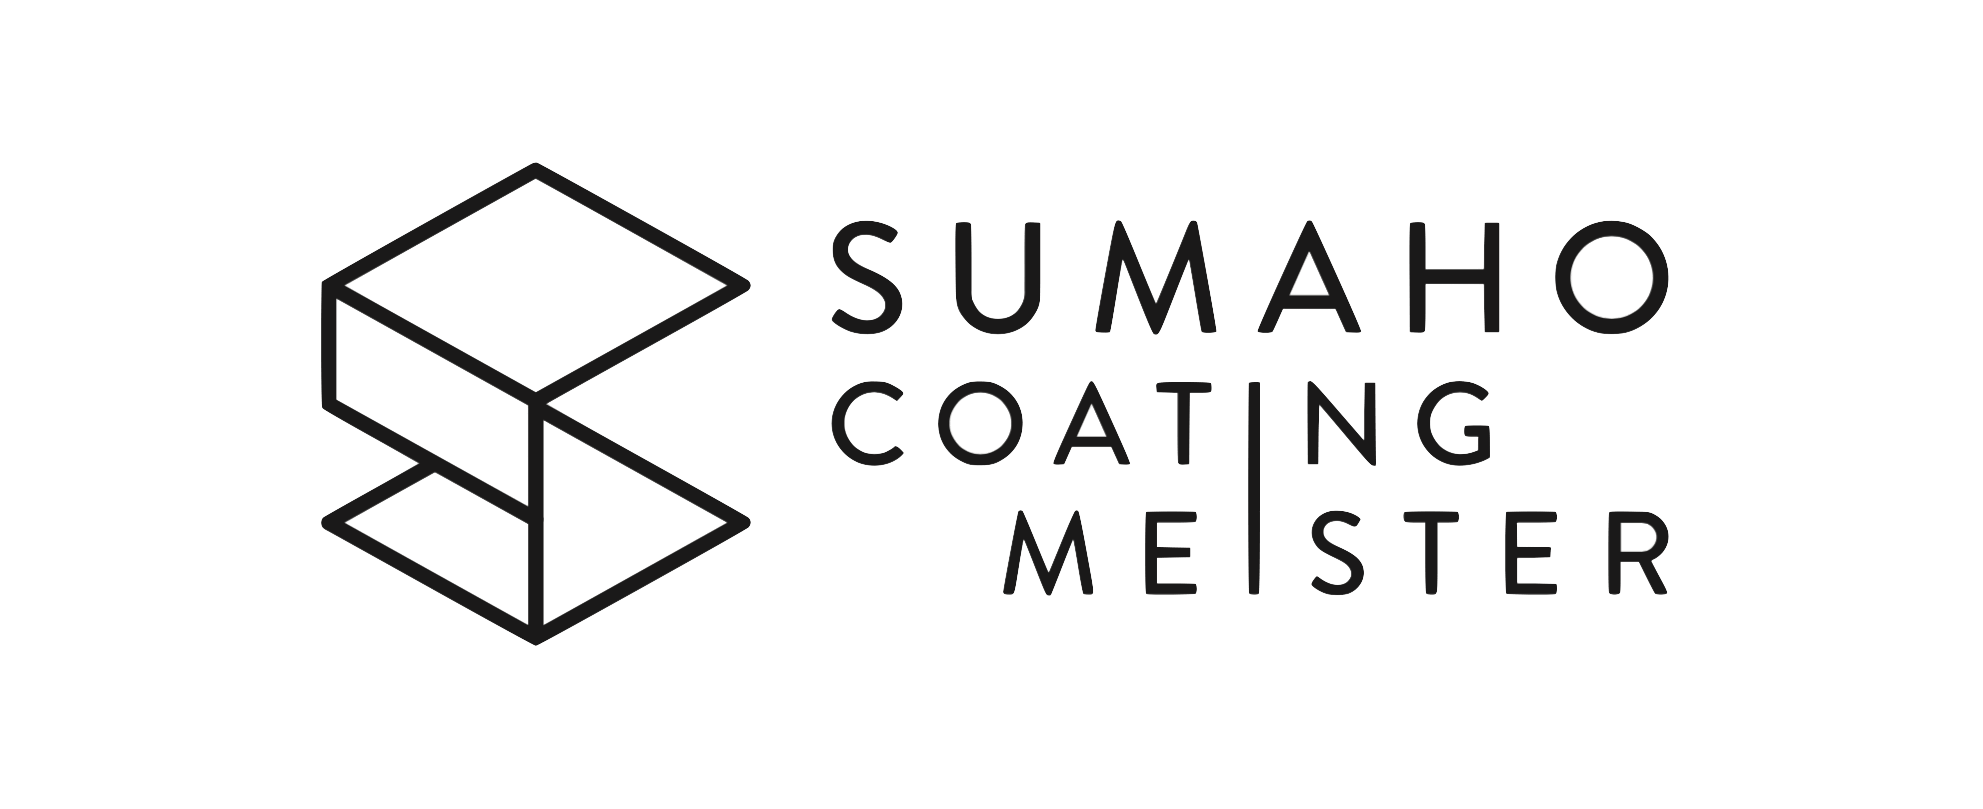 SUMAHO COATING MEISTER